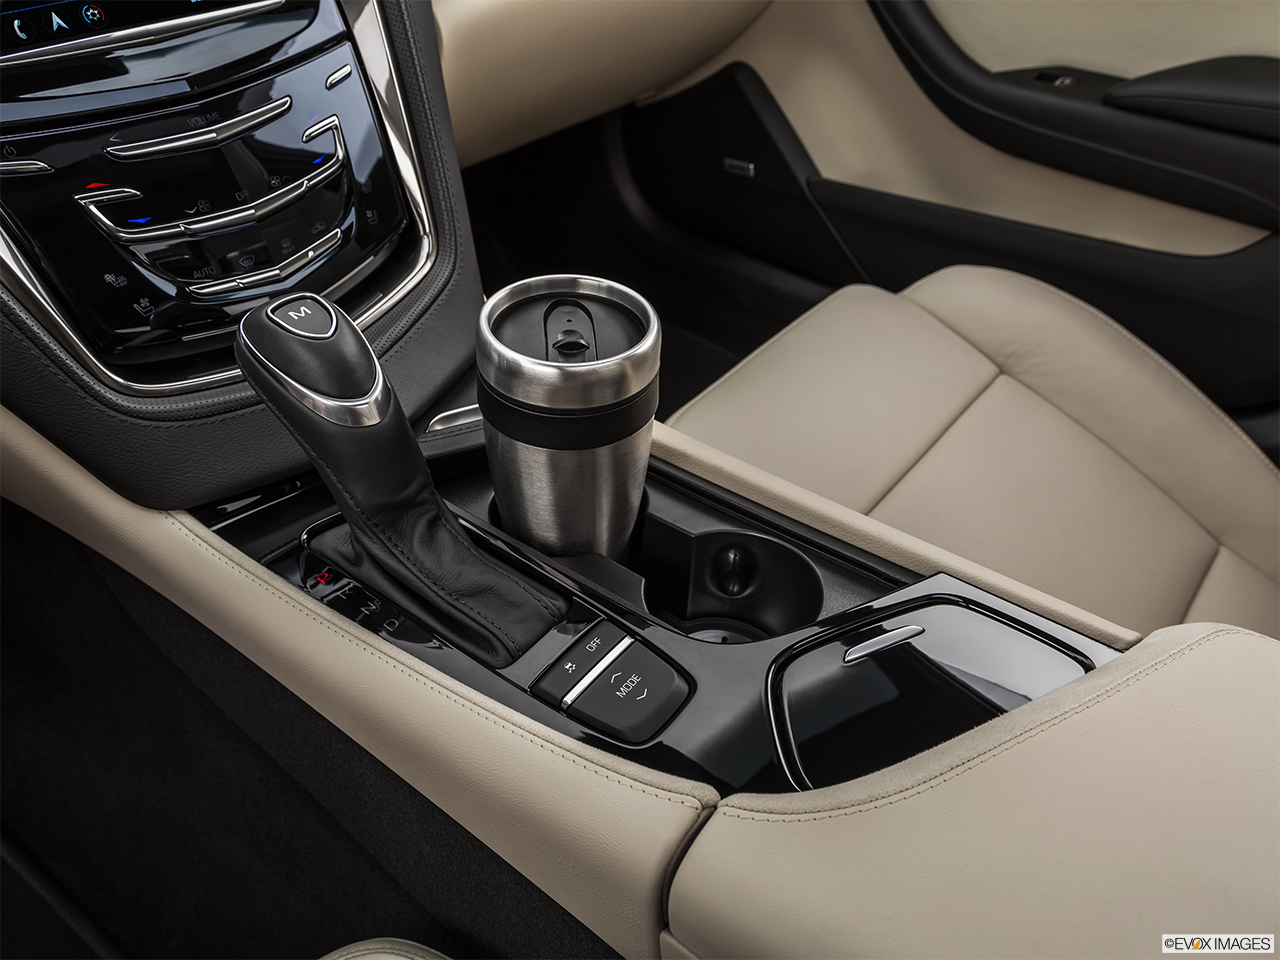 Car Pictures List for Cadillac CTS 2019 3.6L V6 Premium ...